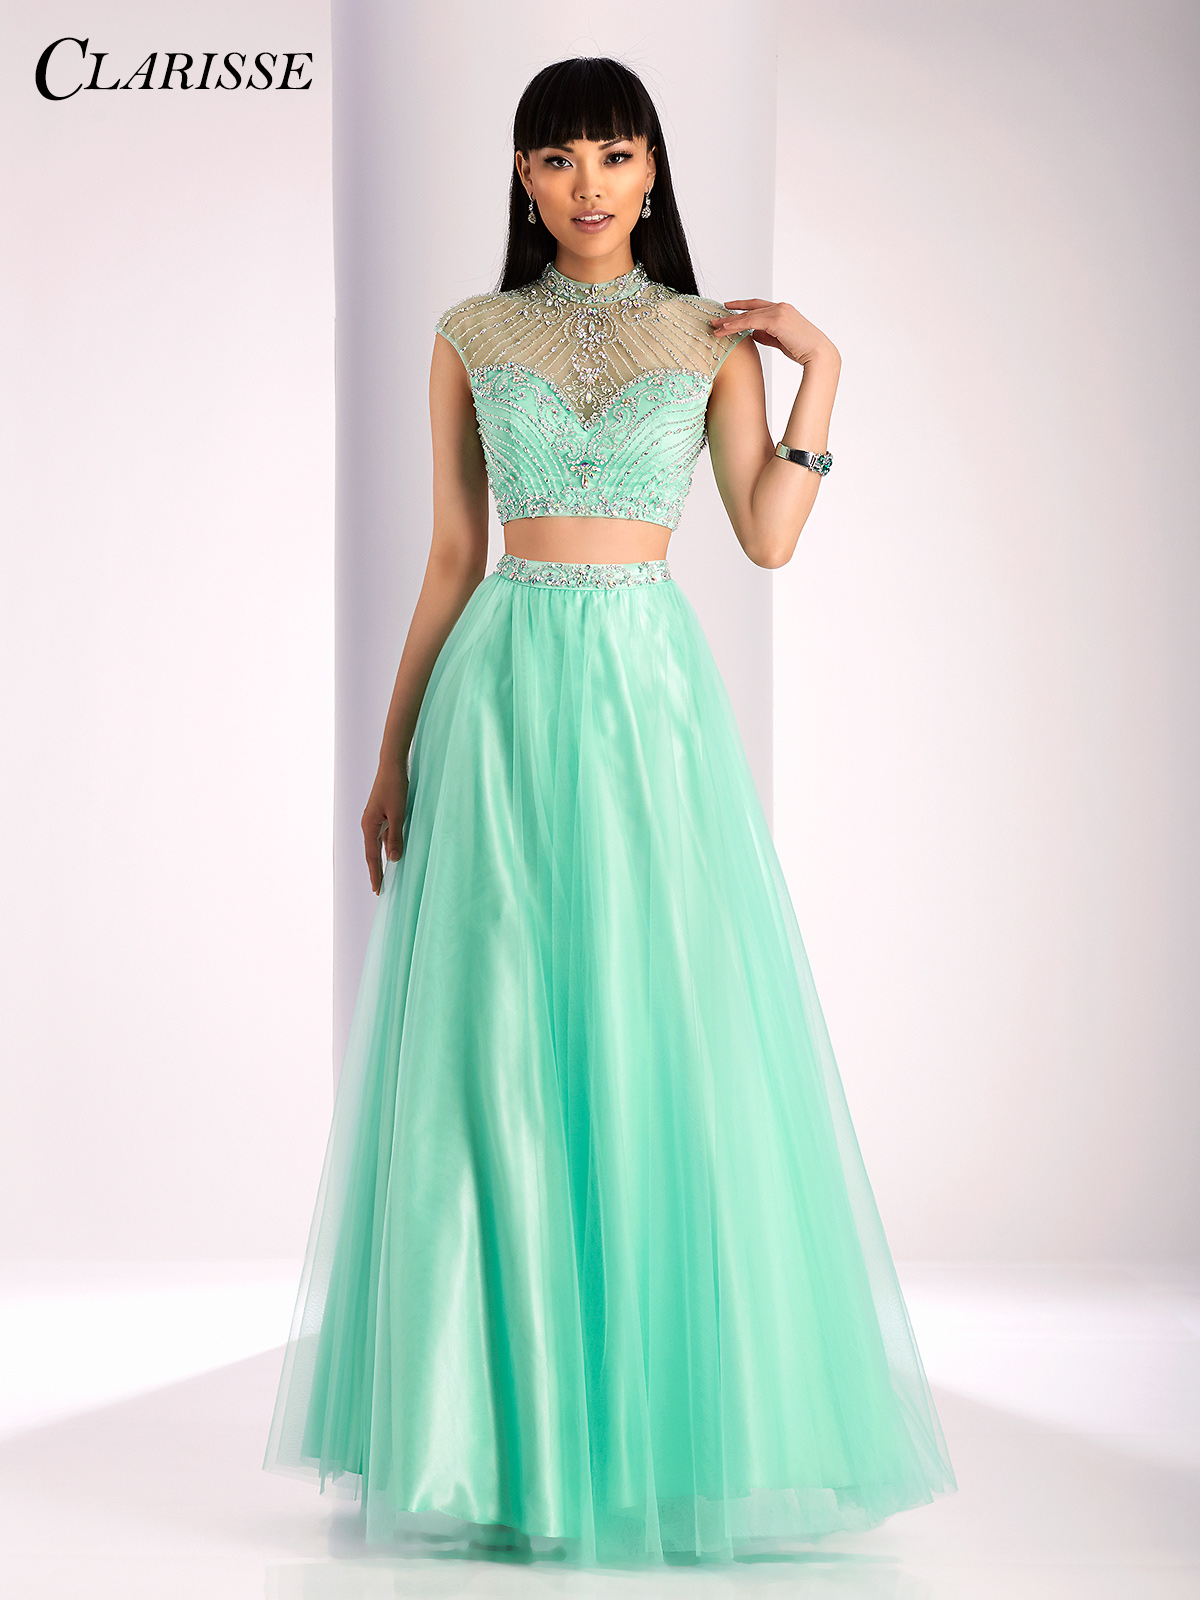 Prom Dresses Sears 2018 - Plus Size Tops